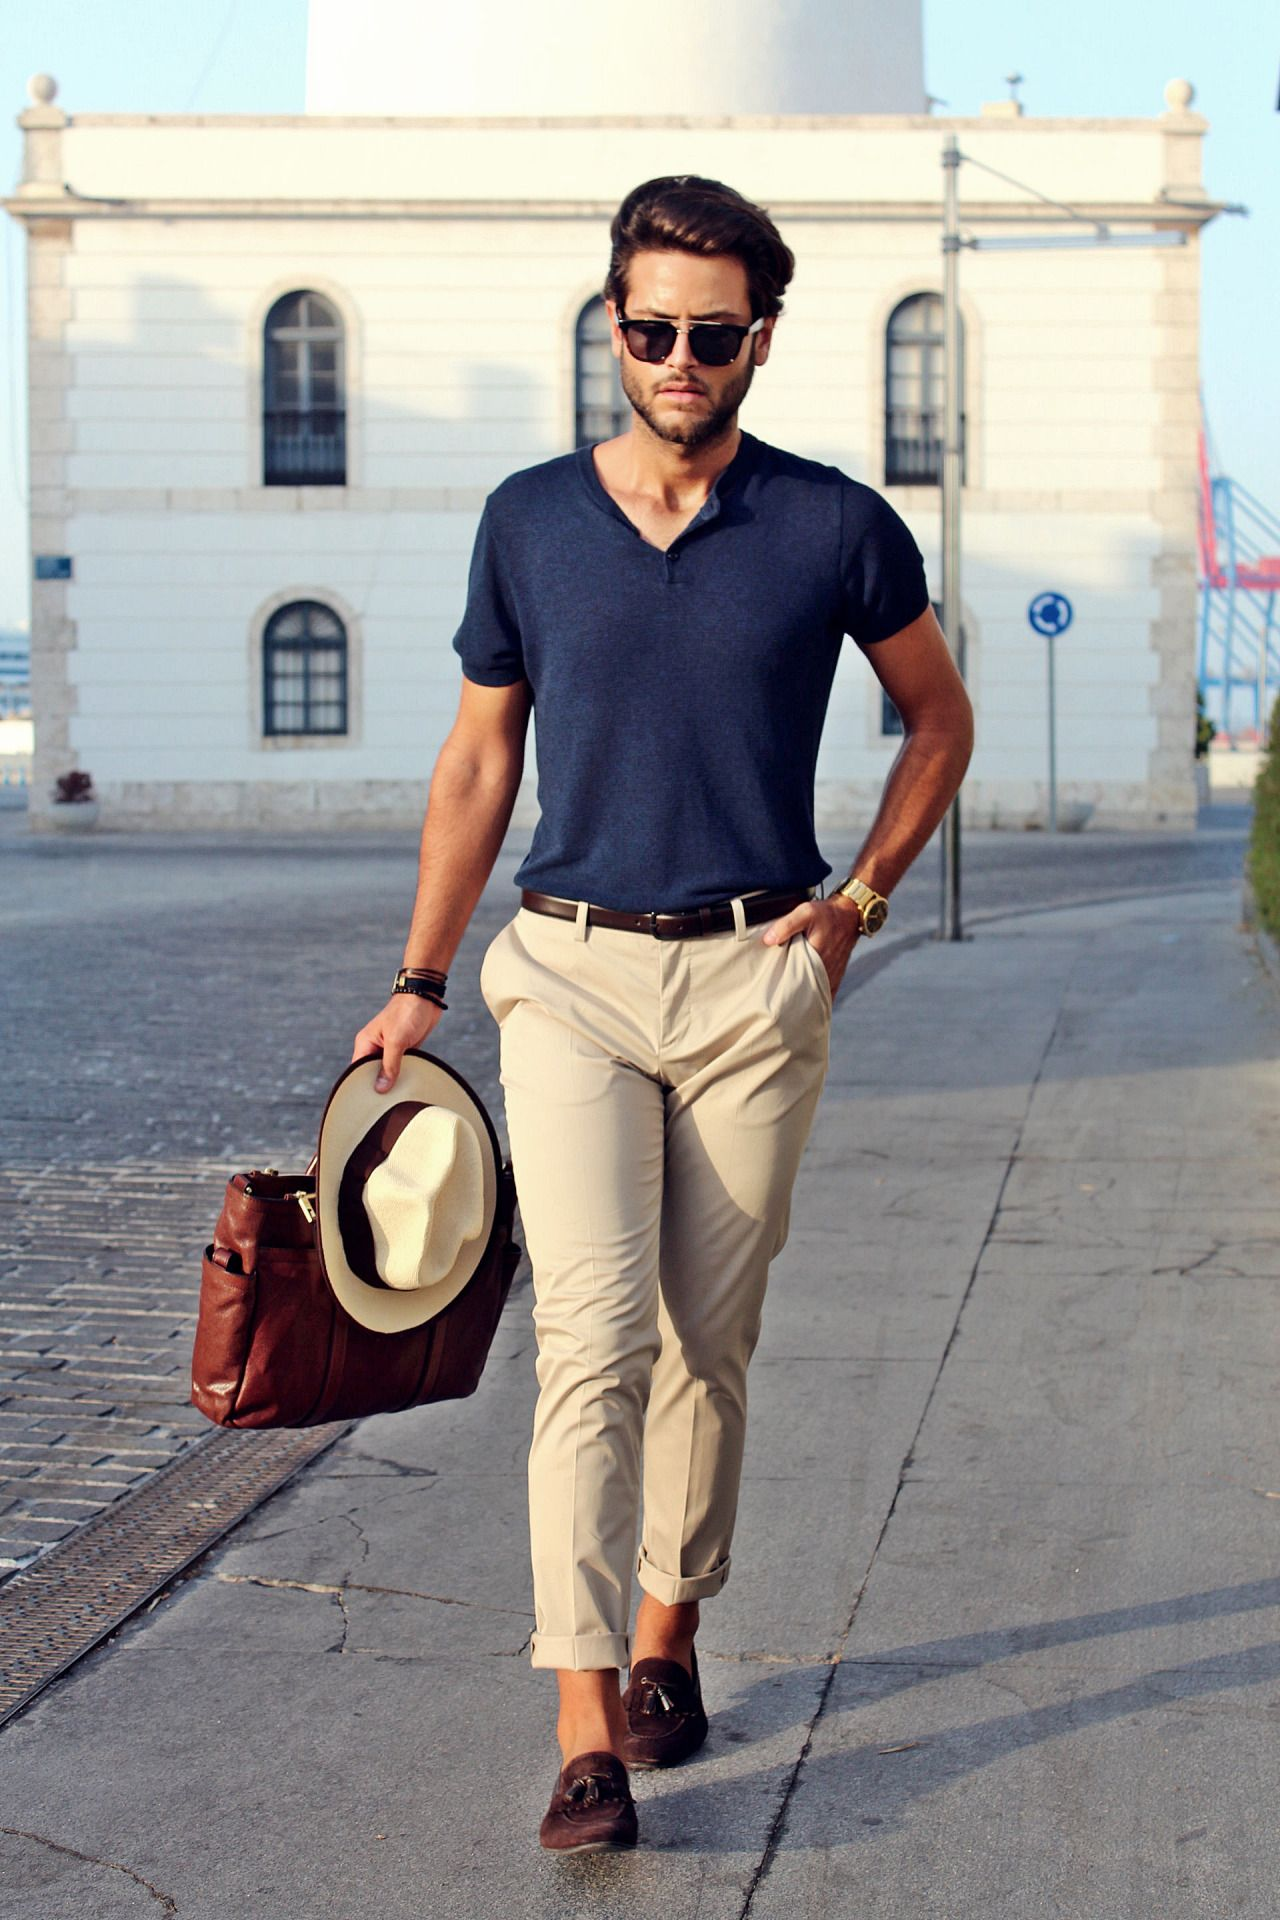 438dc12d387 MenStyle1- Men s Style Blog - Summer style inspiration. FOLLOW   Guidomaggi.